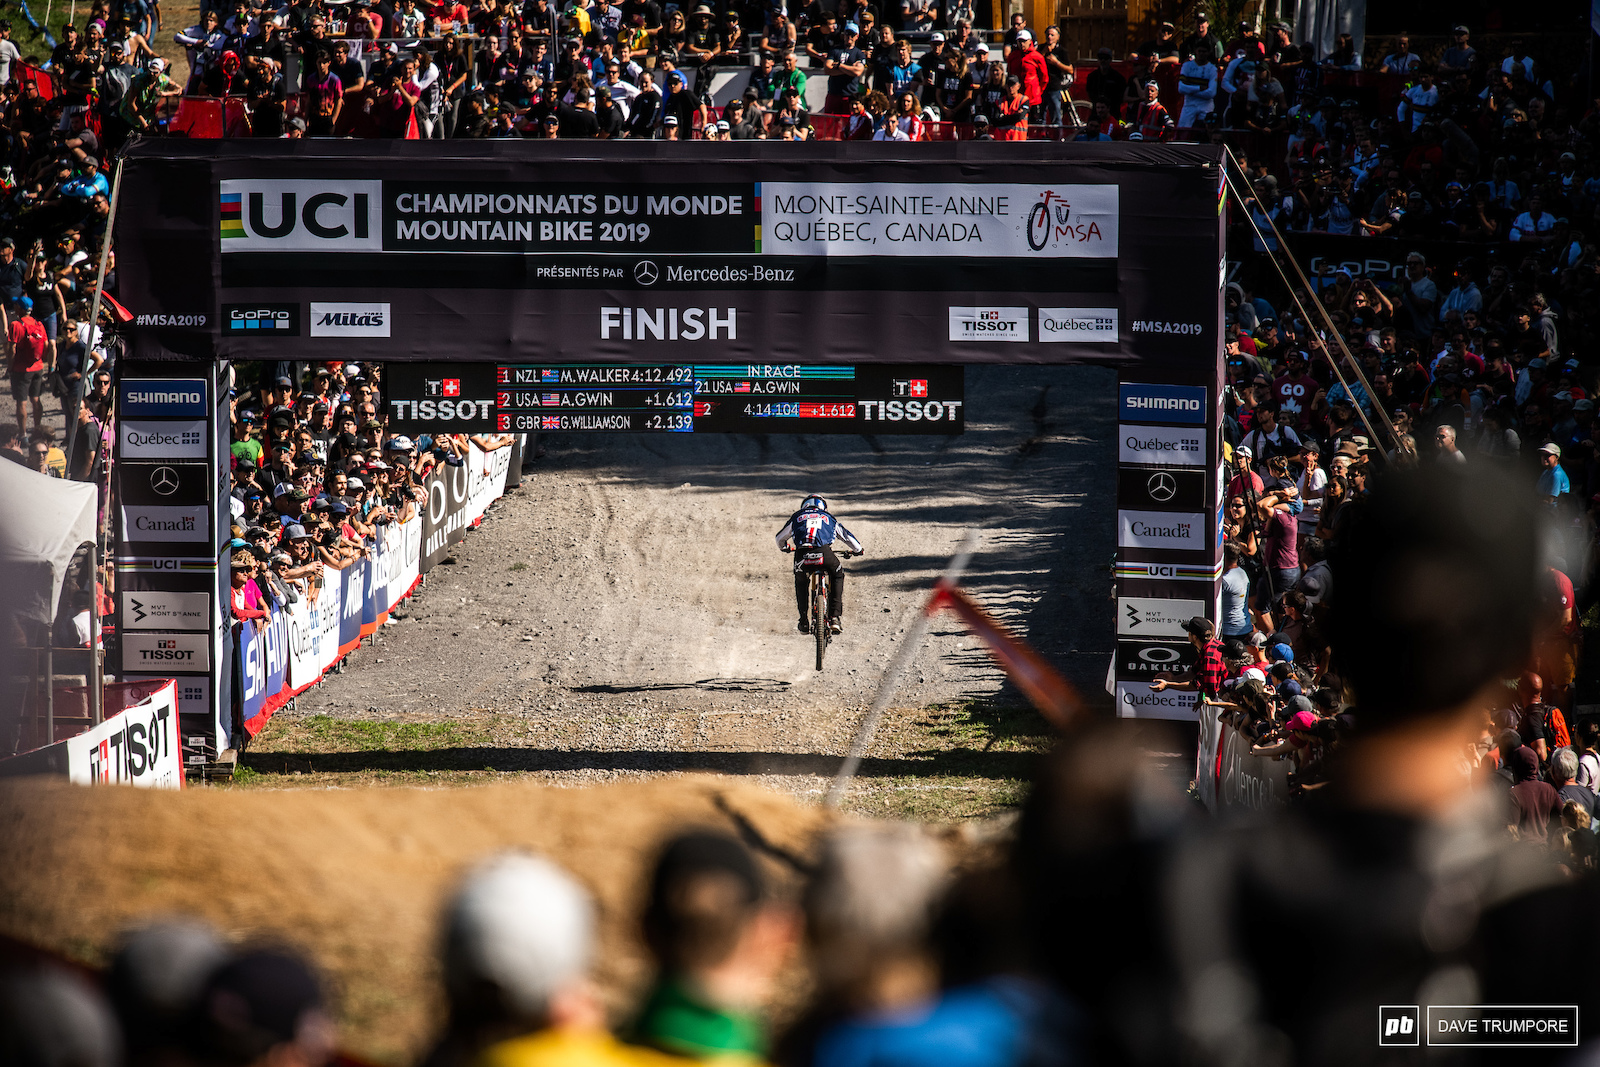 Not Aaron Gwin s day at World Champs. He will be looking for redemption in West Virginia next week